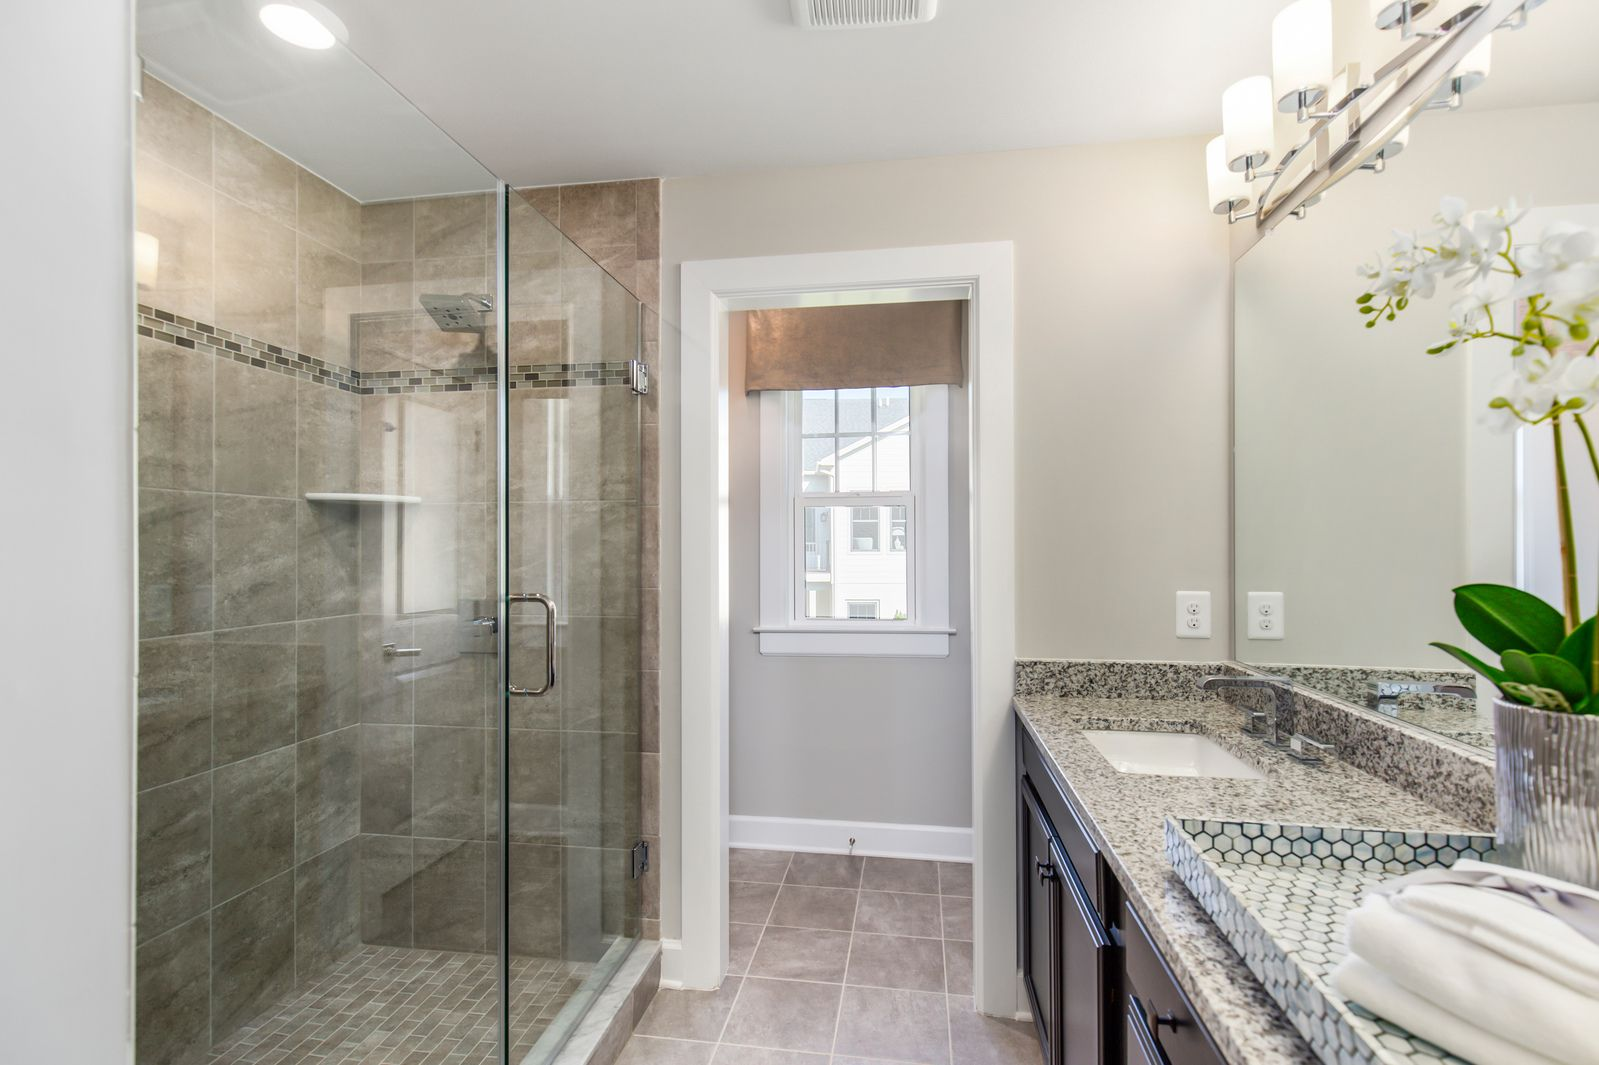 Bathroom featured in the Merion By NVHomes in Philadelphia, PA